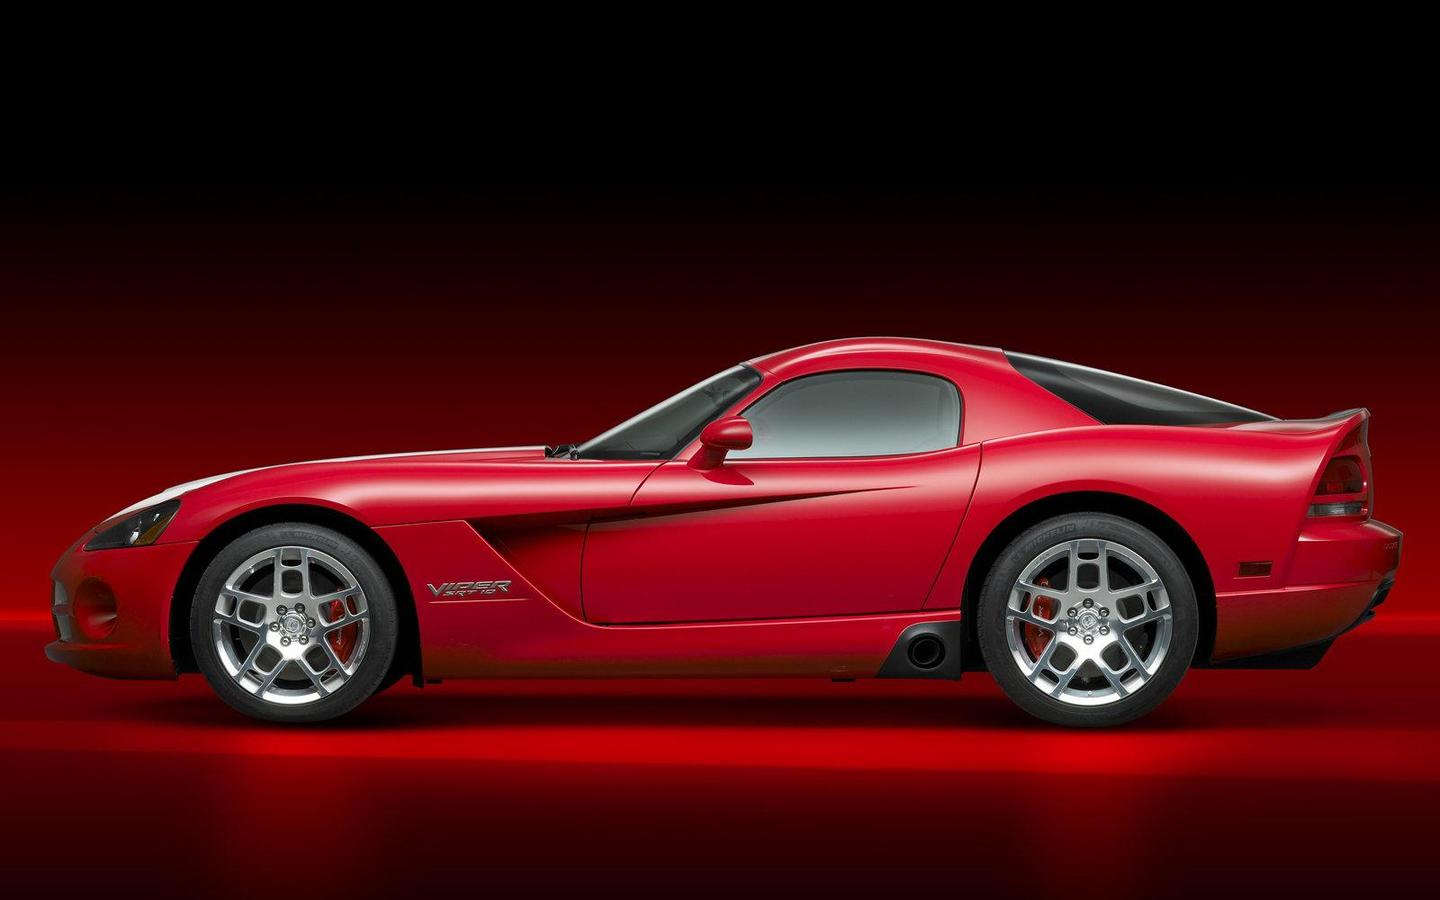 Dodge Viper Srt10 2008 1600×1200 Wallpaper 09